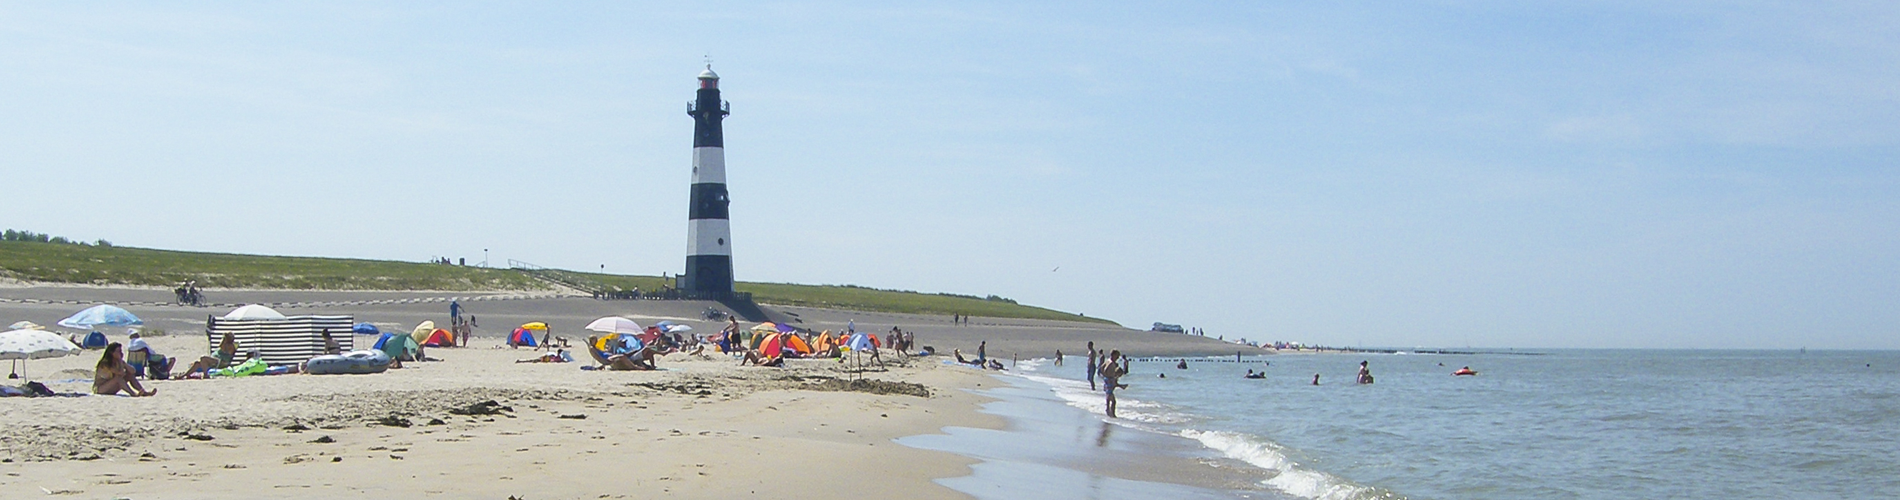 wide_view_lighthouse_beach